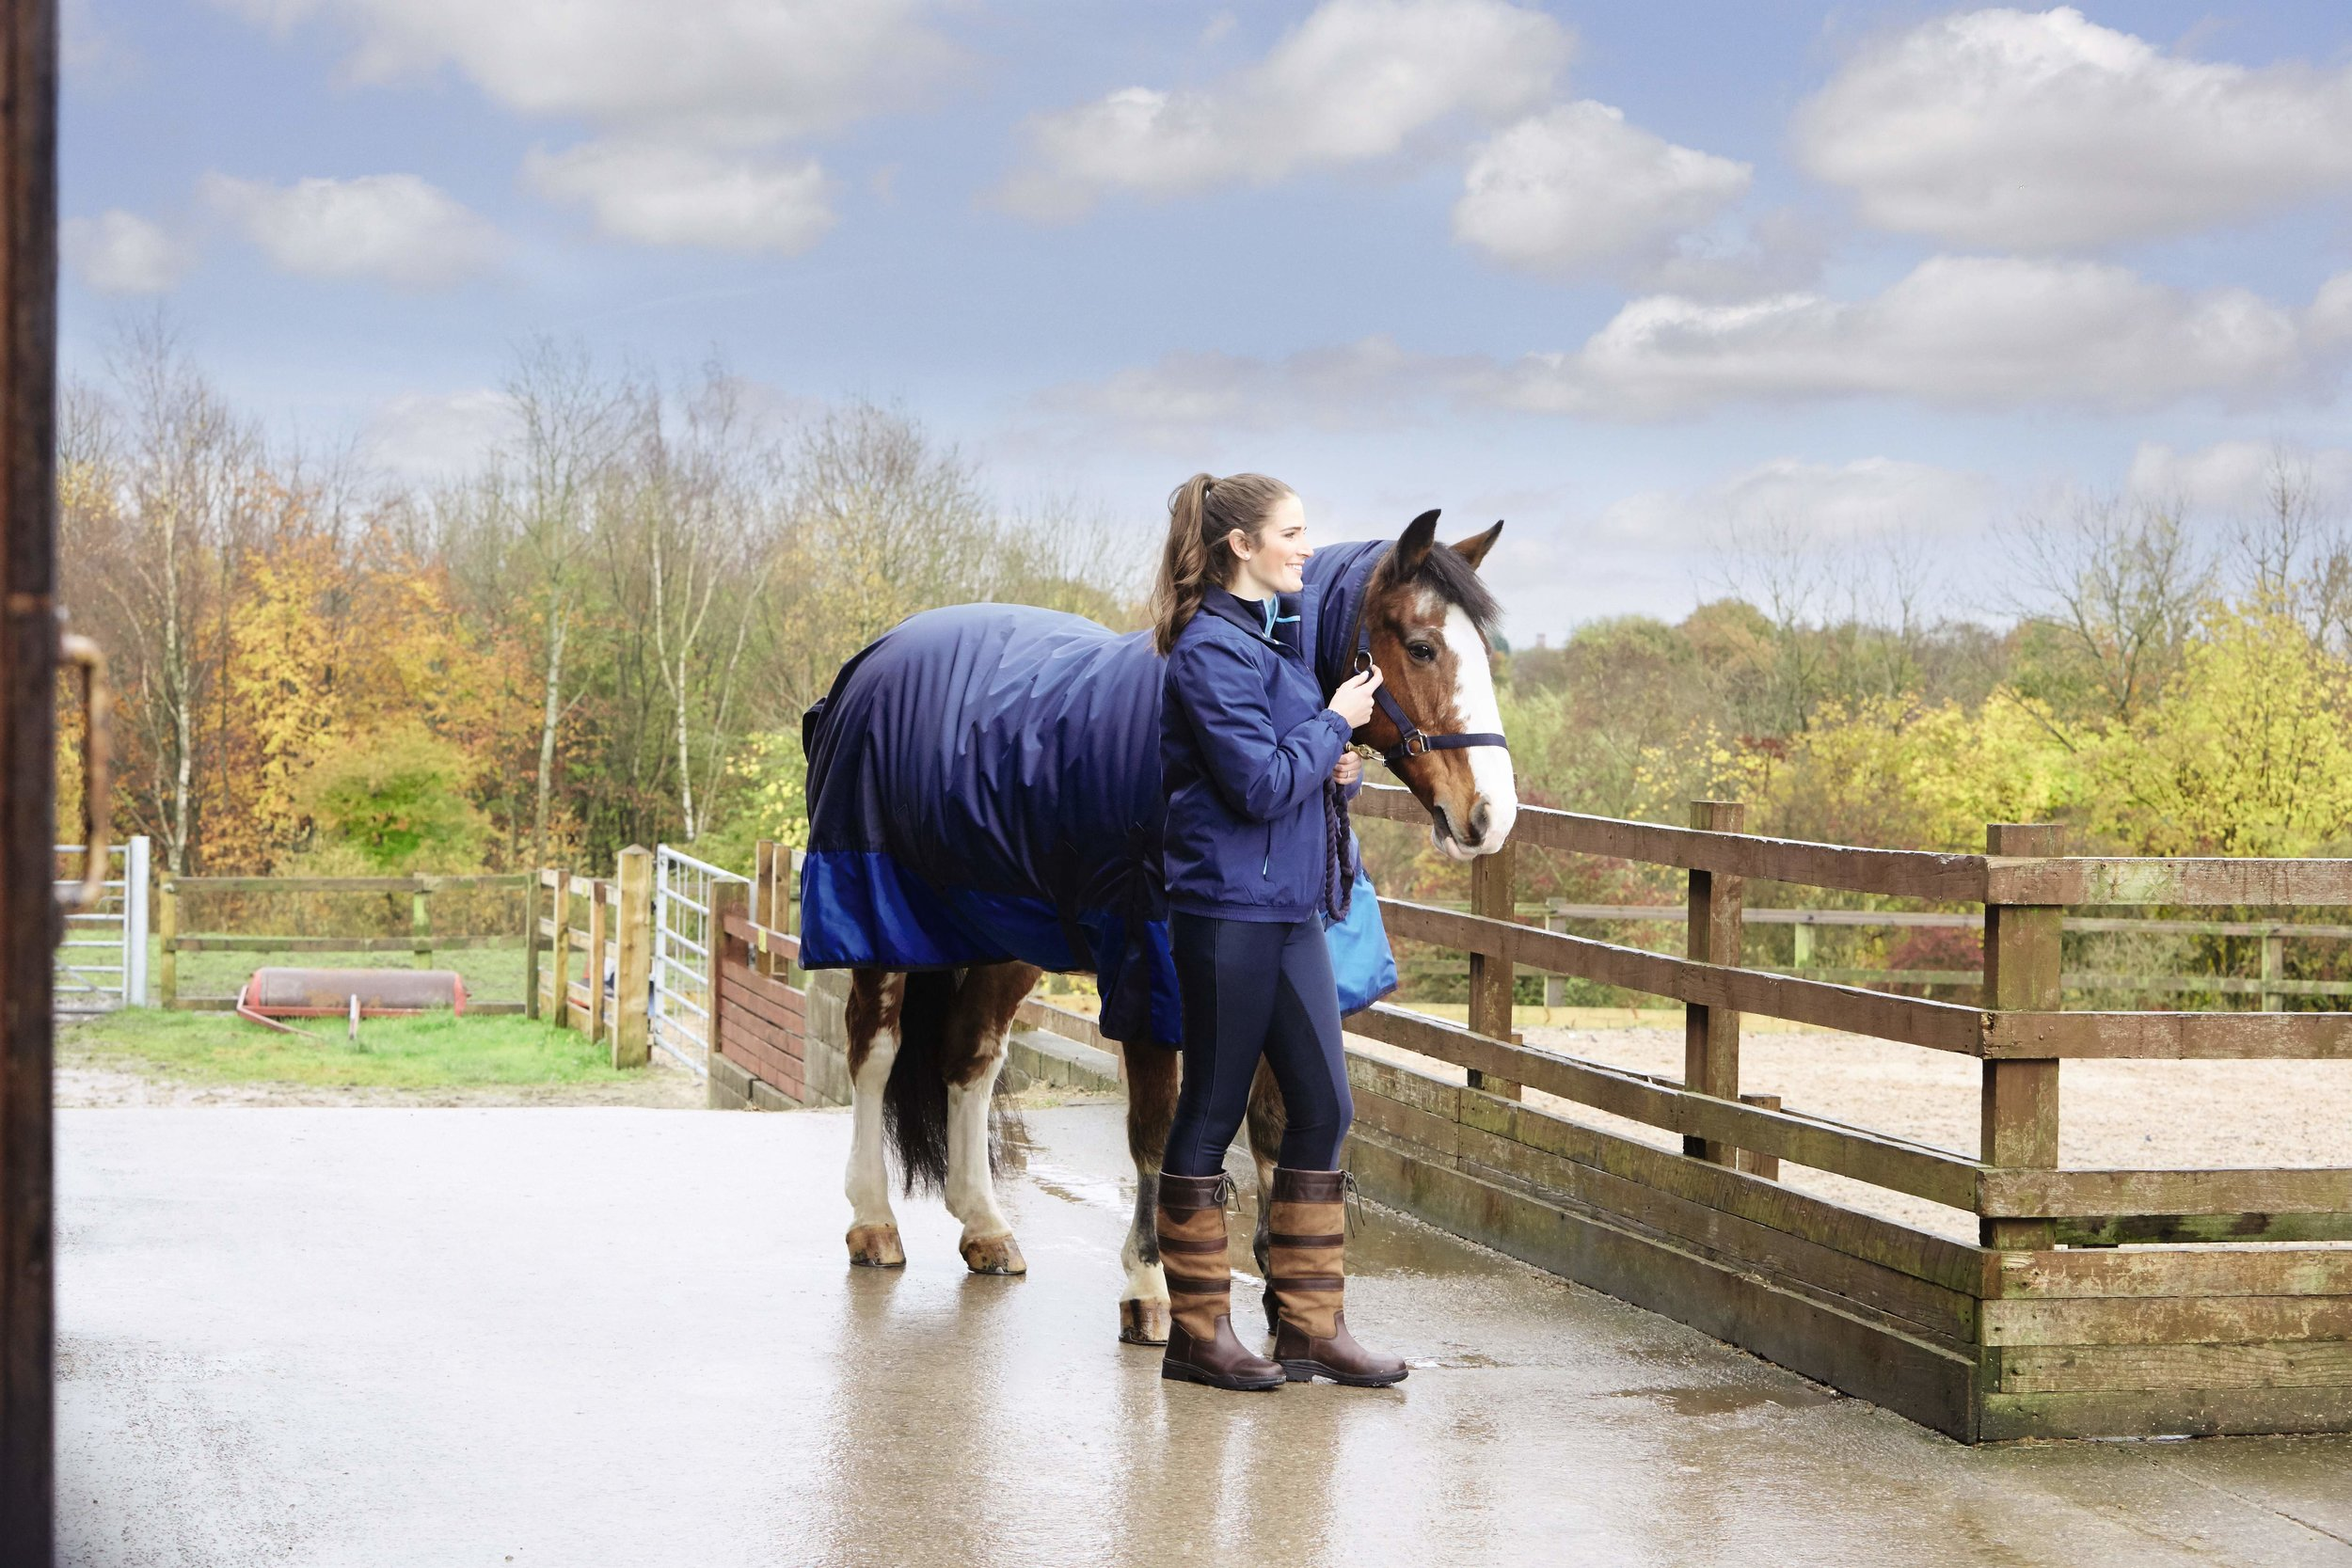 Aldi's new Country Living range has a great selection of horsey clothing